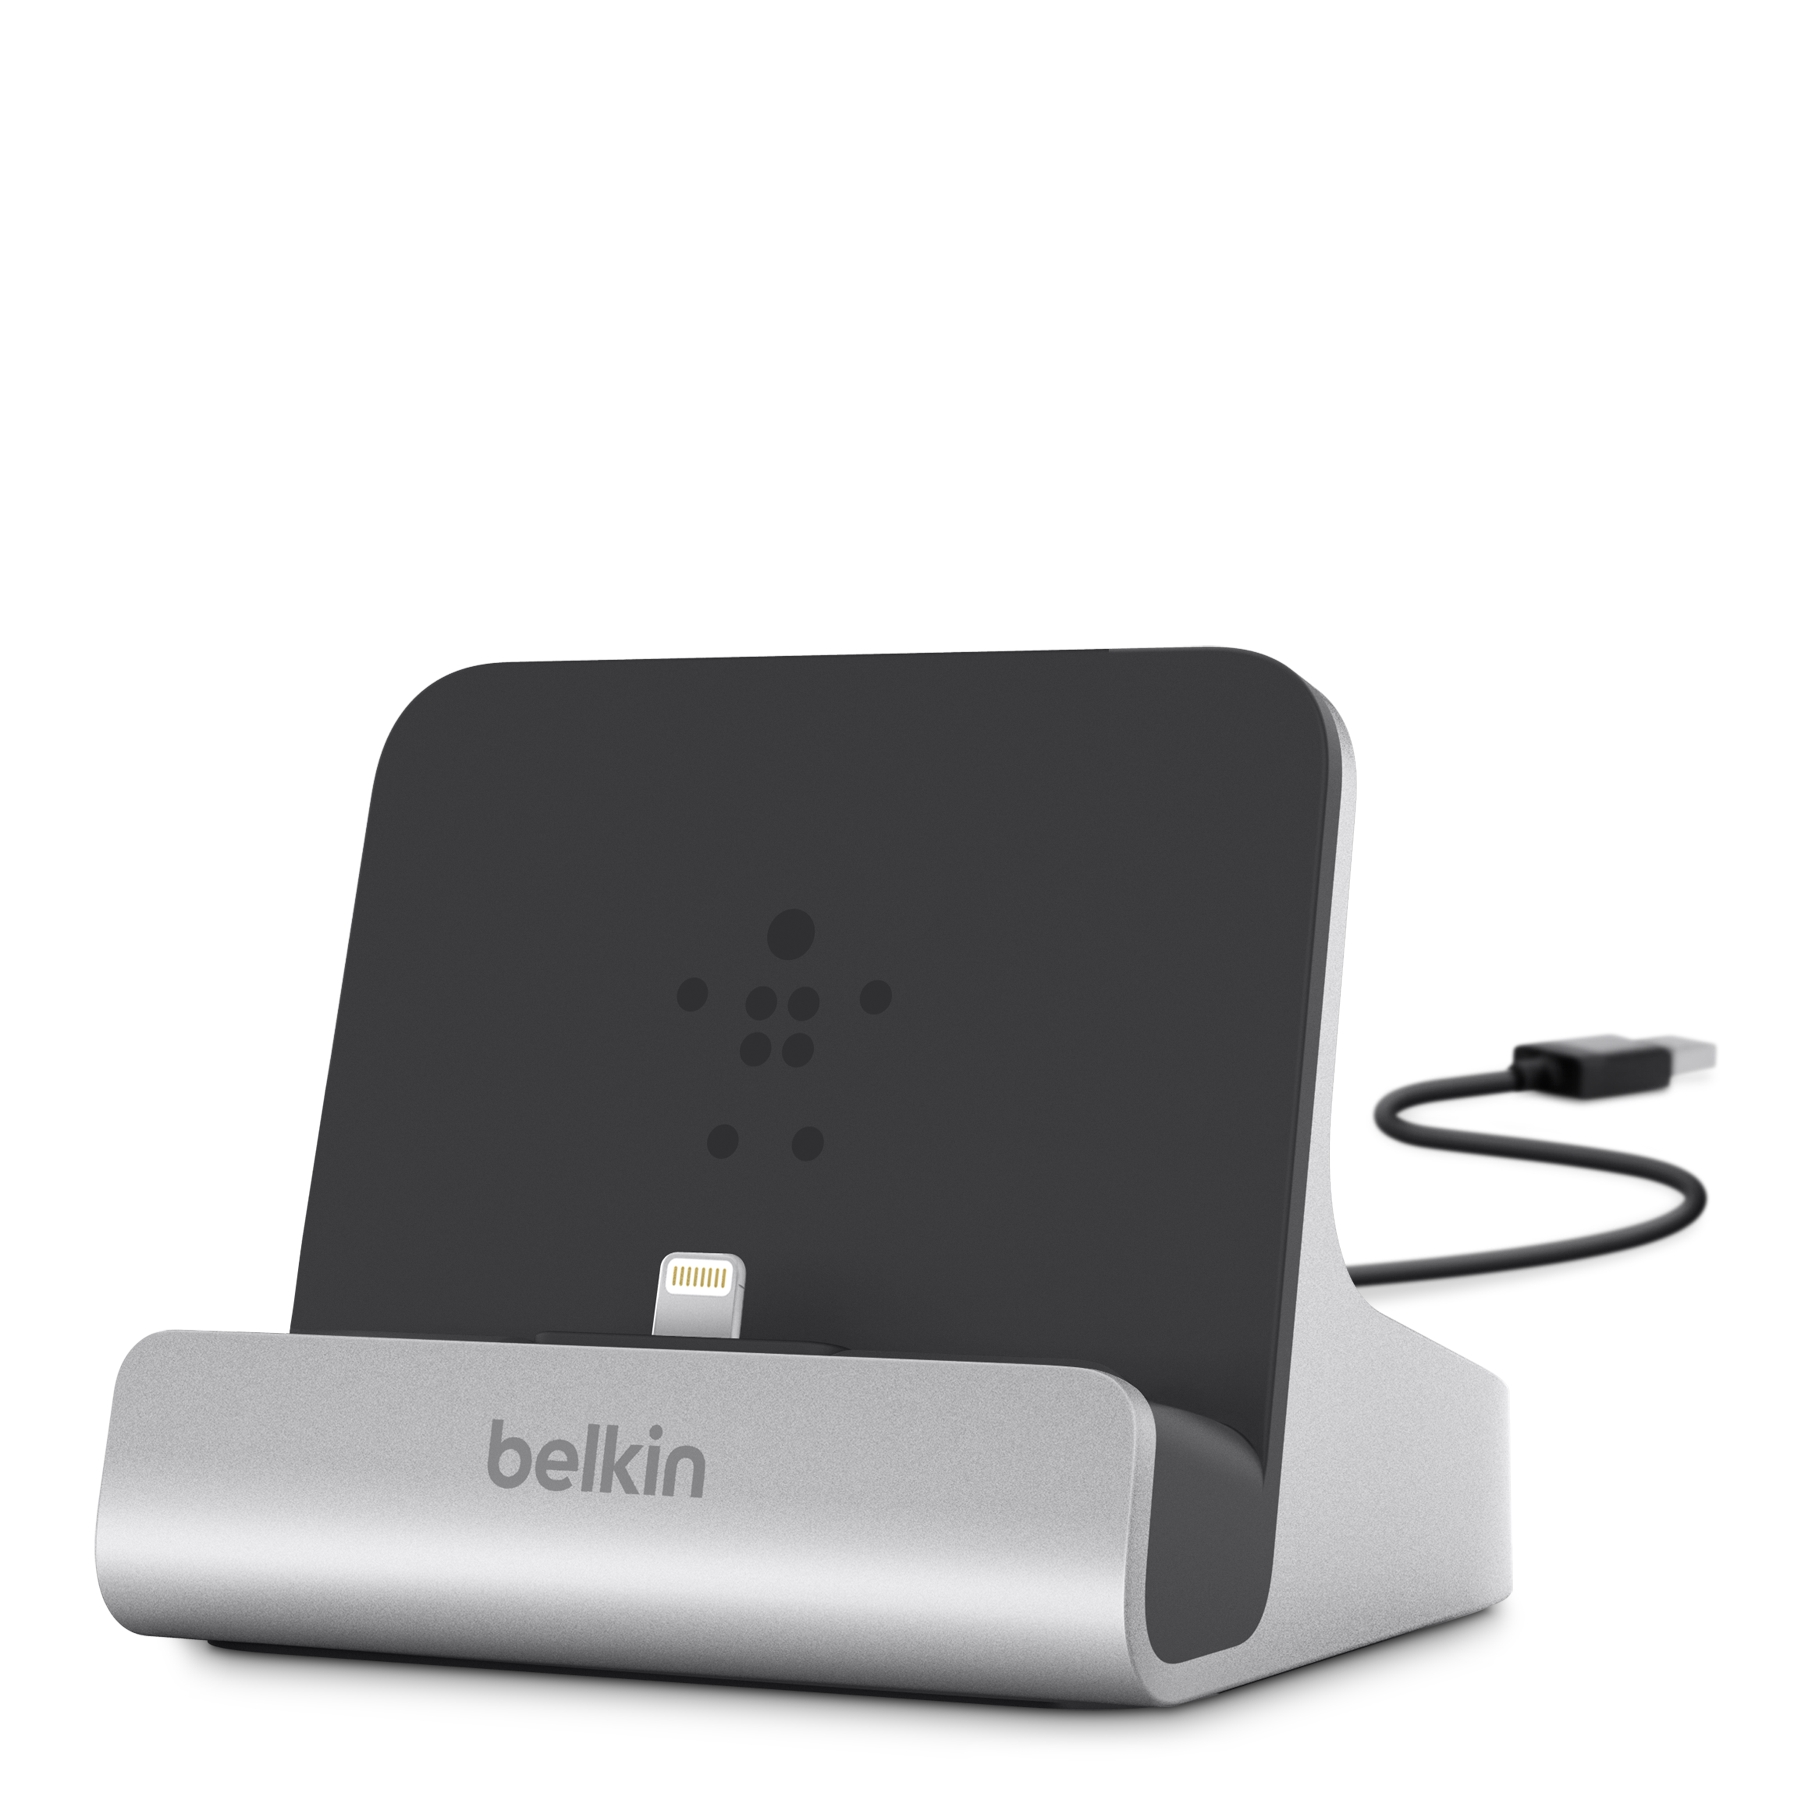 ... and Syncing Made Easy with the New Belkin Express Dock for iPad